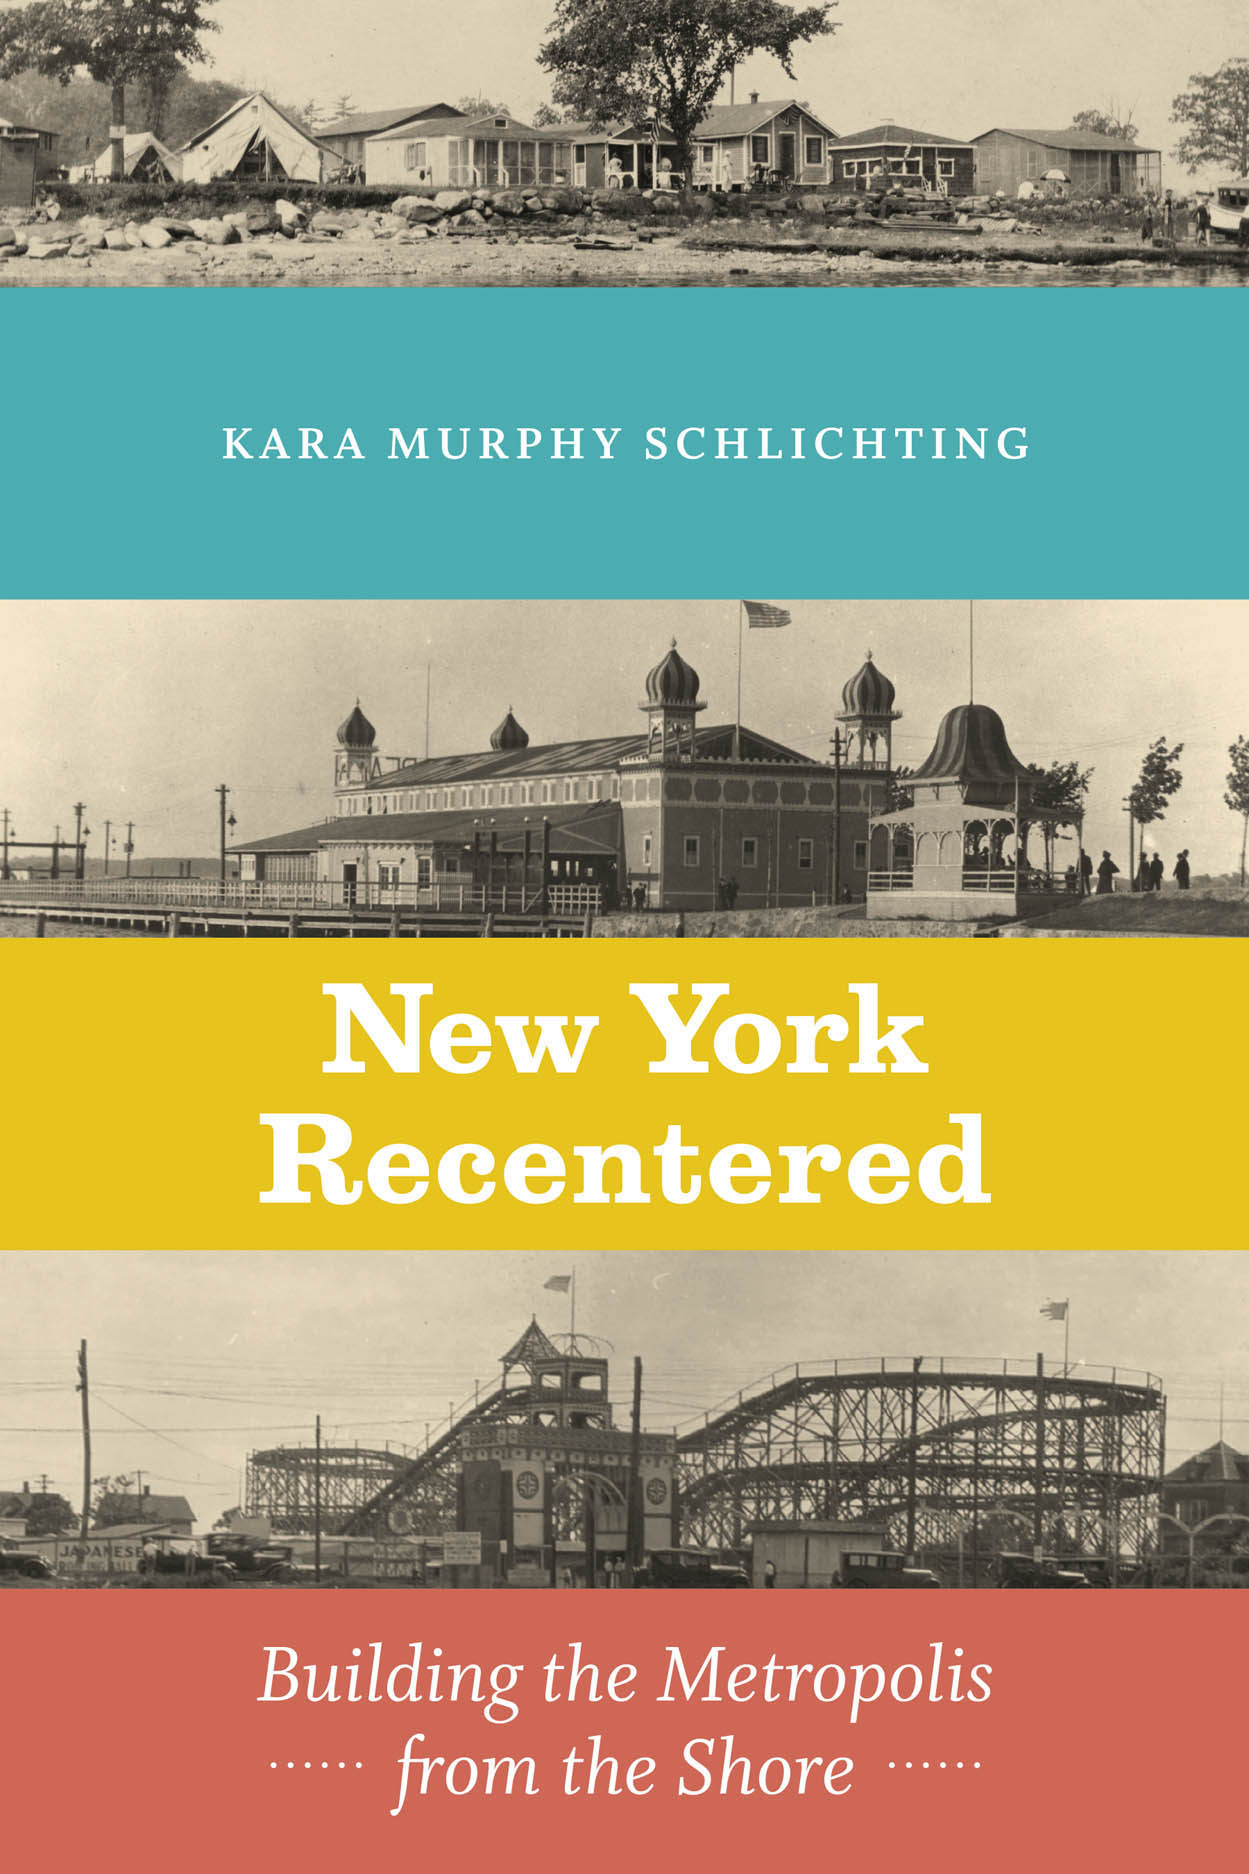 New York Recentered: Building the Metropolis from the Shore